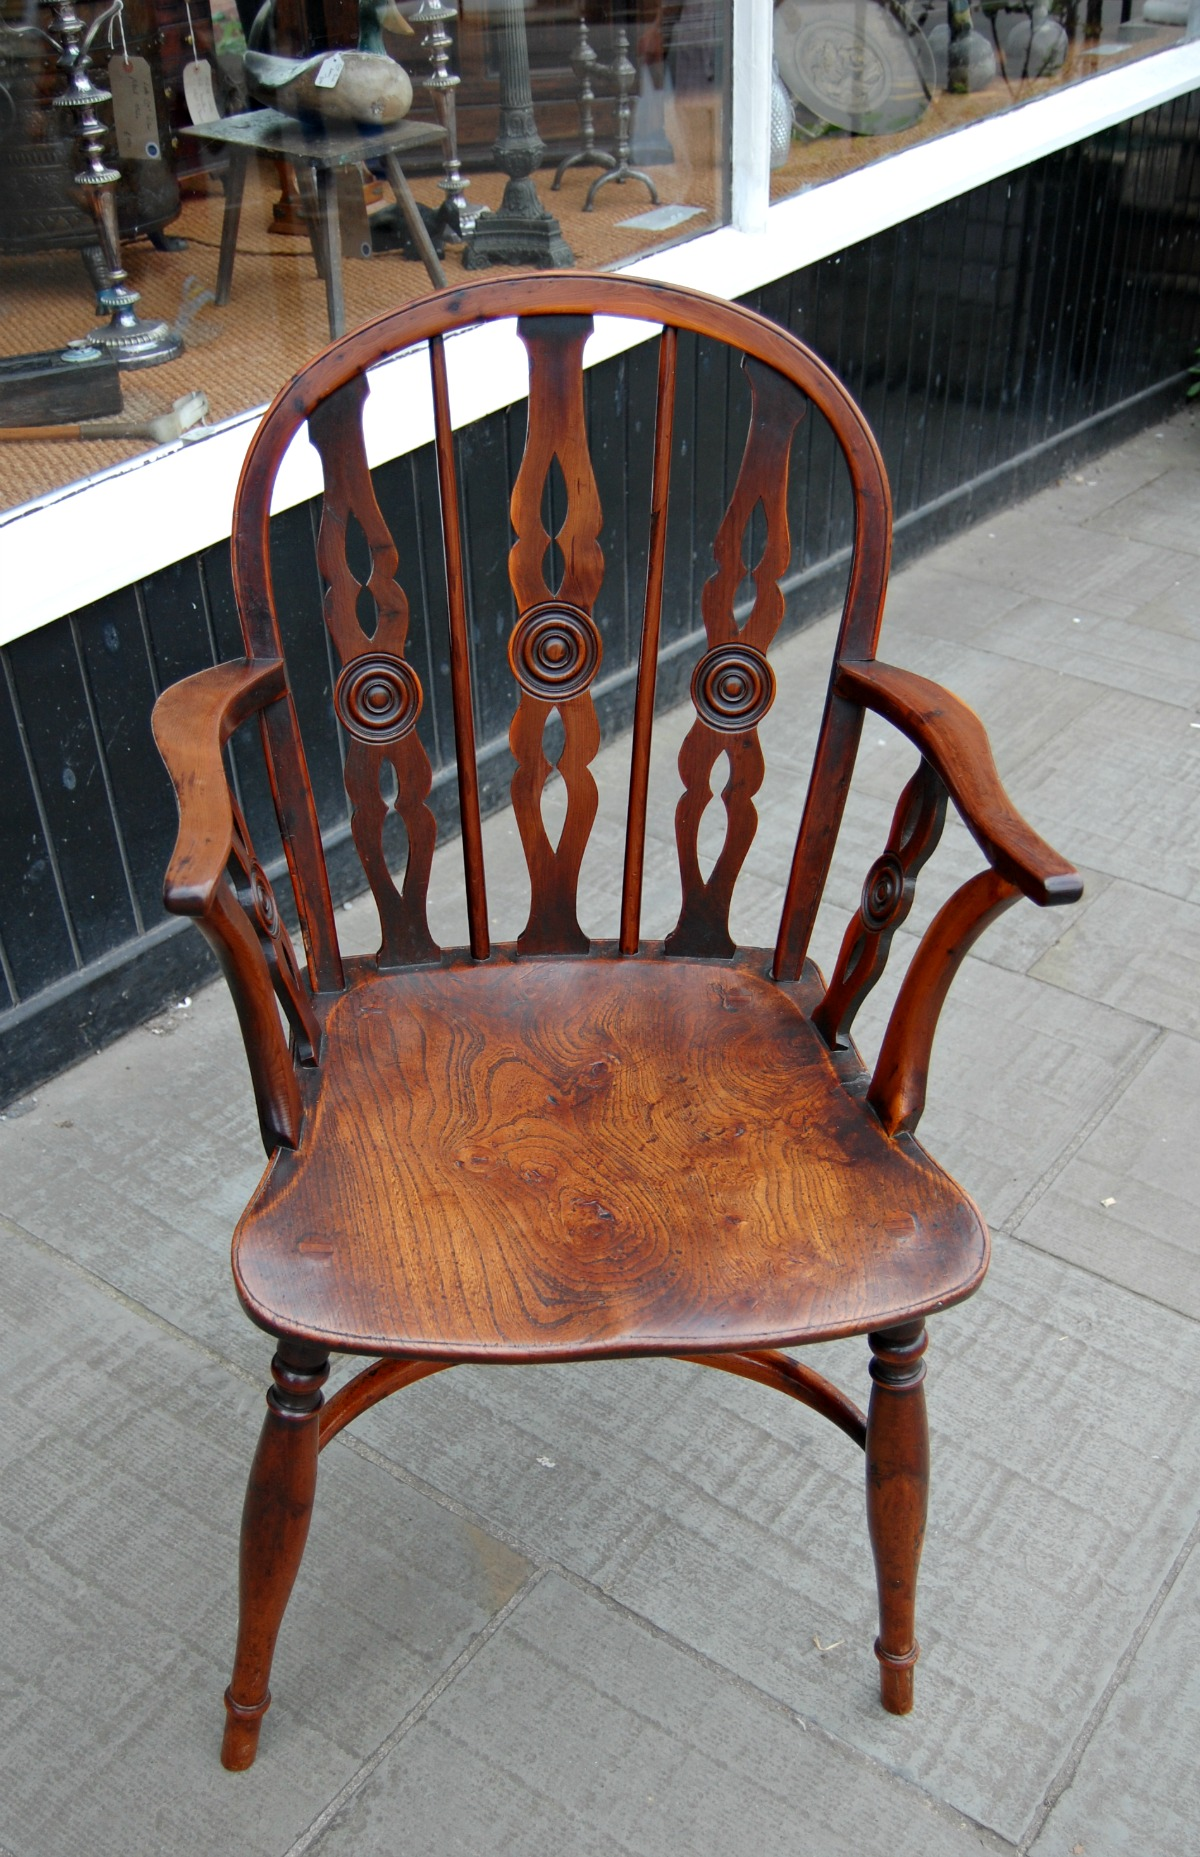 chair styles chairs and phyfe federal fred comp antique or furniture it news caution this pigeonhole sorting hepplewhite pair columns international with of taylor a is